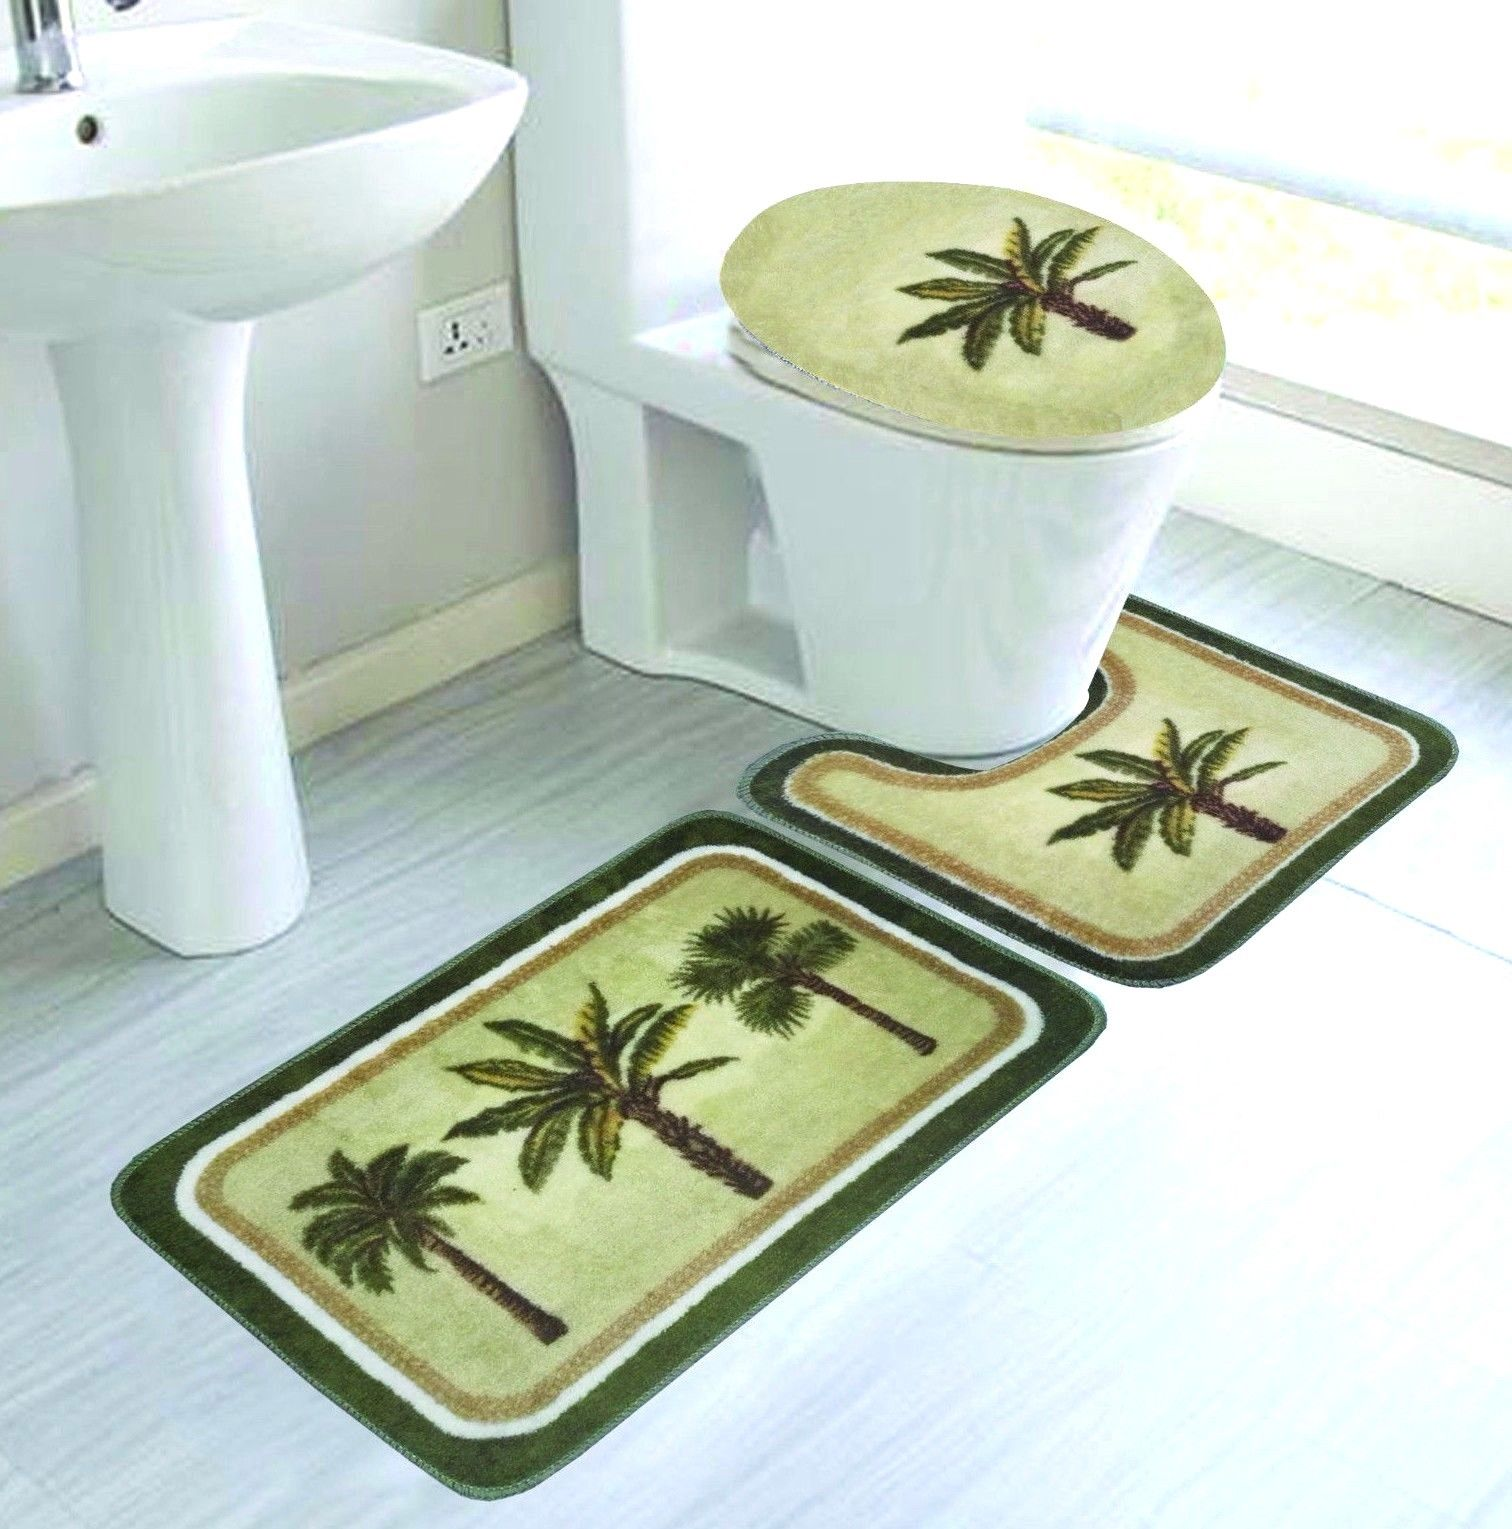 "3-PC PALM TREE Bathroom Rug Set Absorbent Non-Slip Large Rug 19""x30"", Contour Rug 19""x19"" and Toilet Seat Lid Cover 19""x19"" with Non-Skid Rubber back"